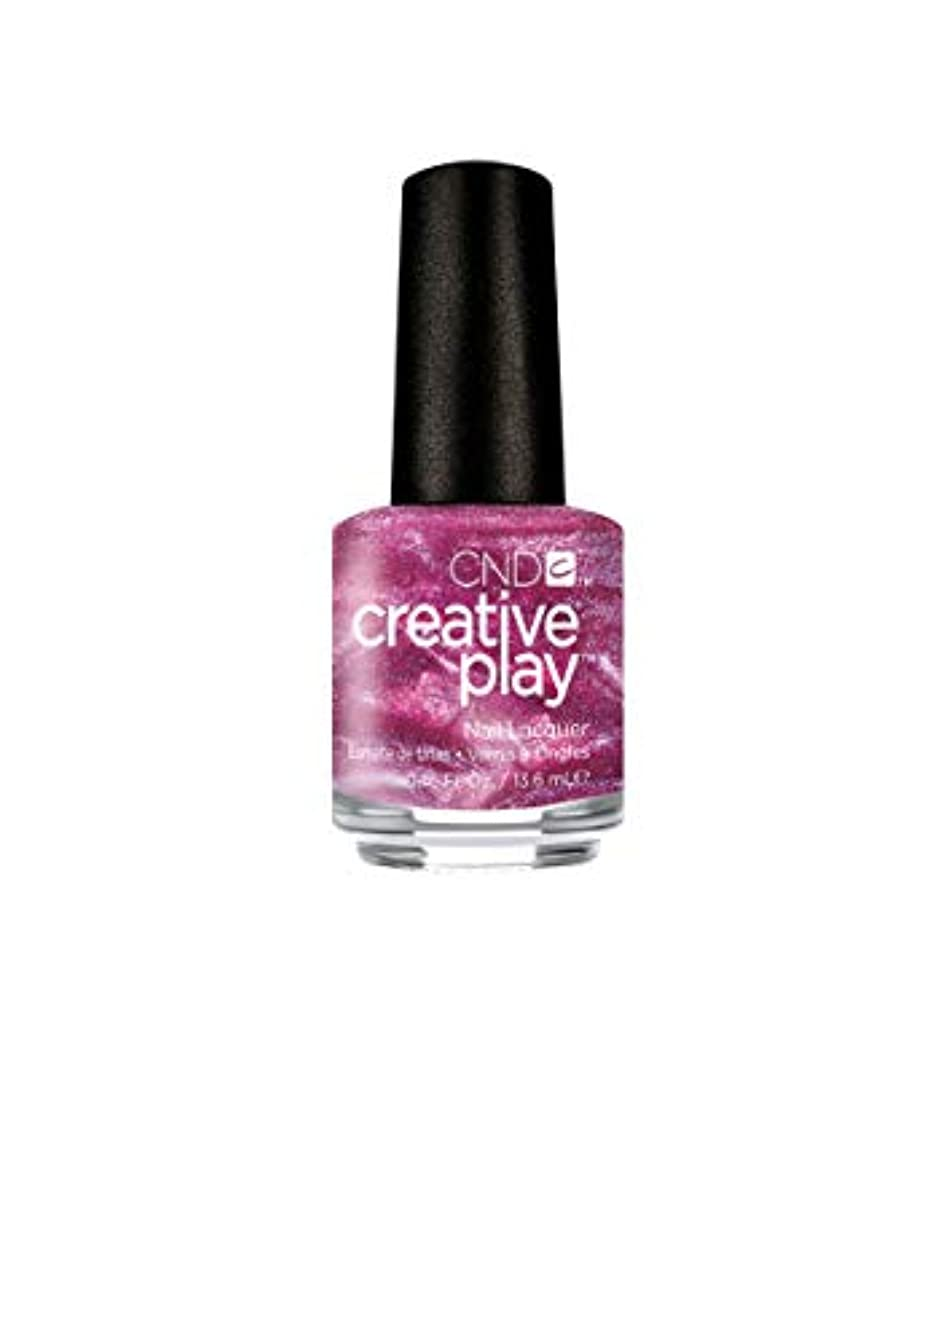 CND Creative Play Lacquer - Pinkidescent - 0.46oz / 13.6ml